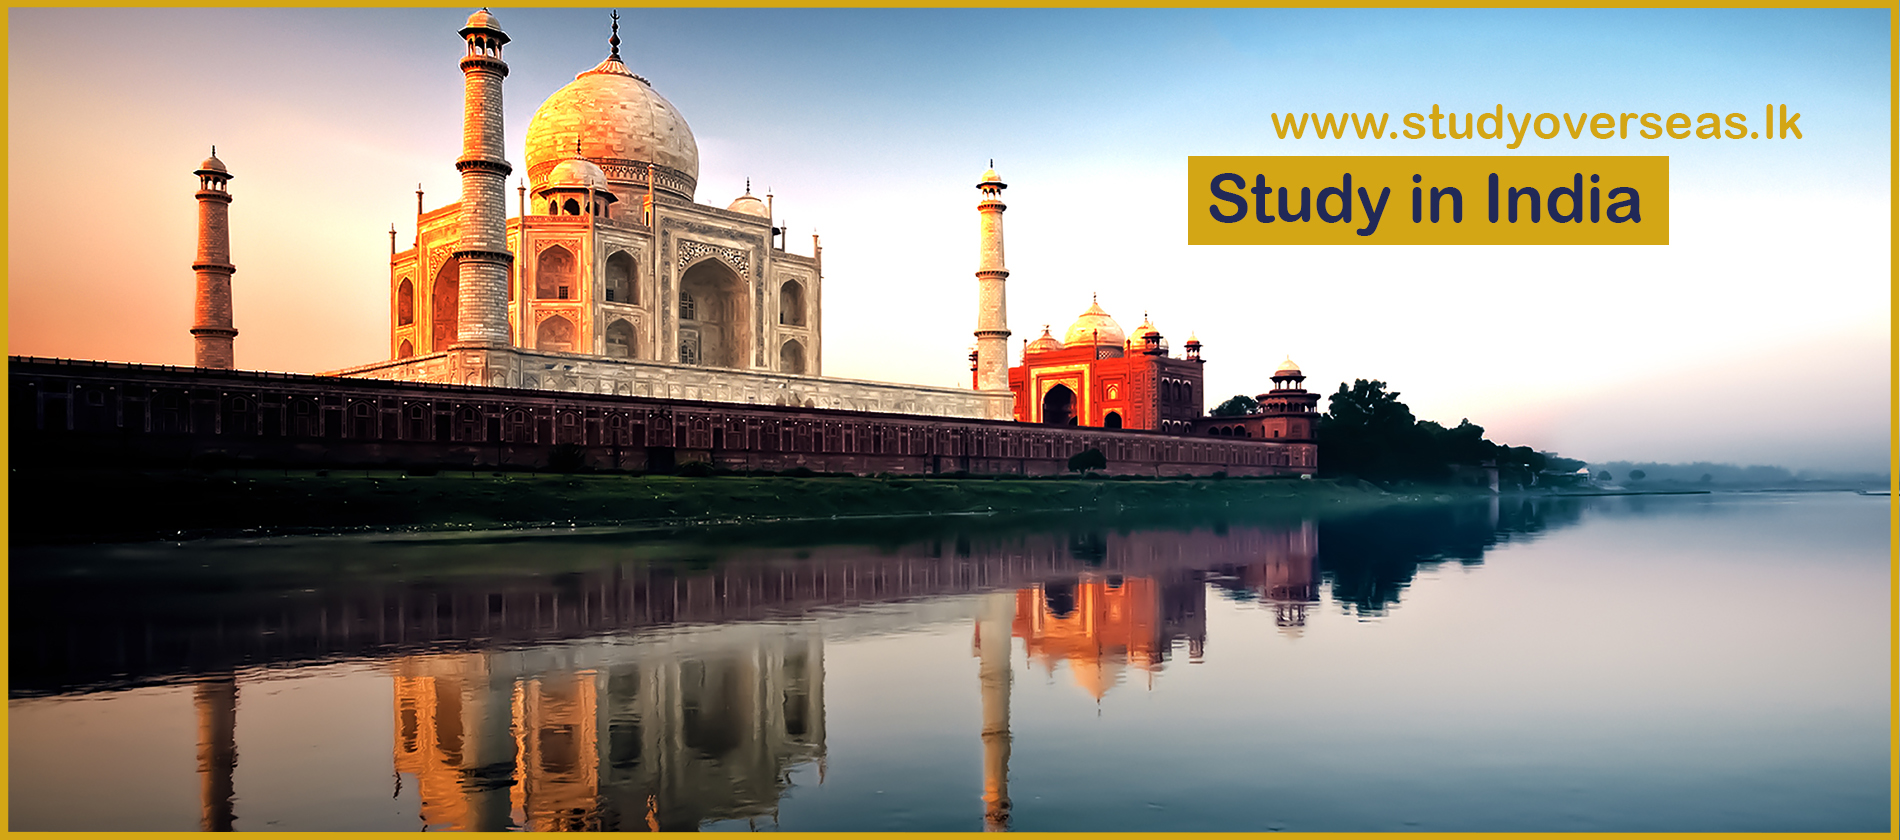 study_in_india_www.studyoverseas.lk